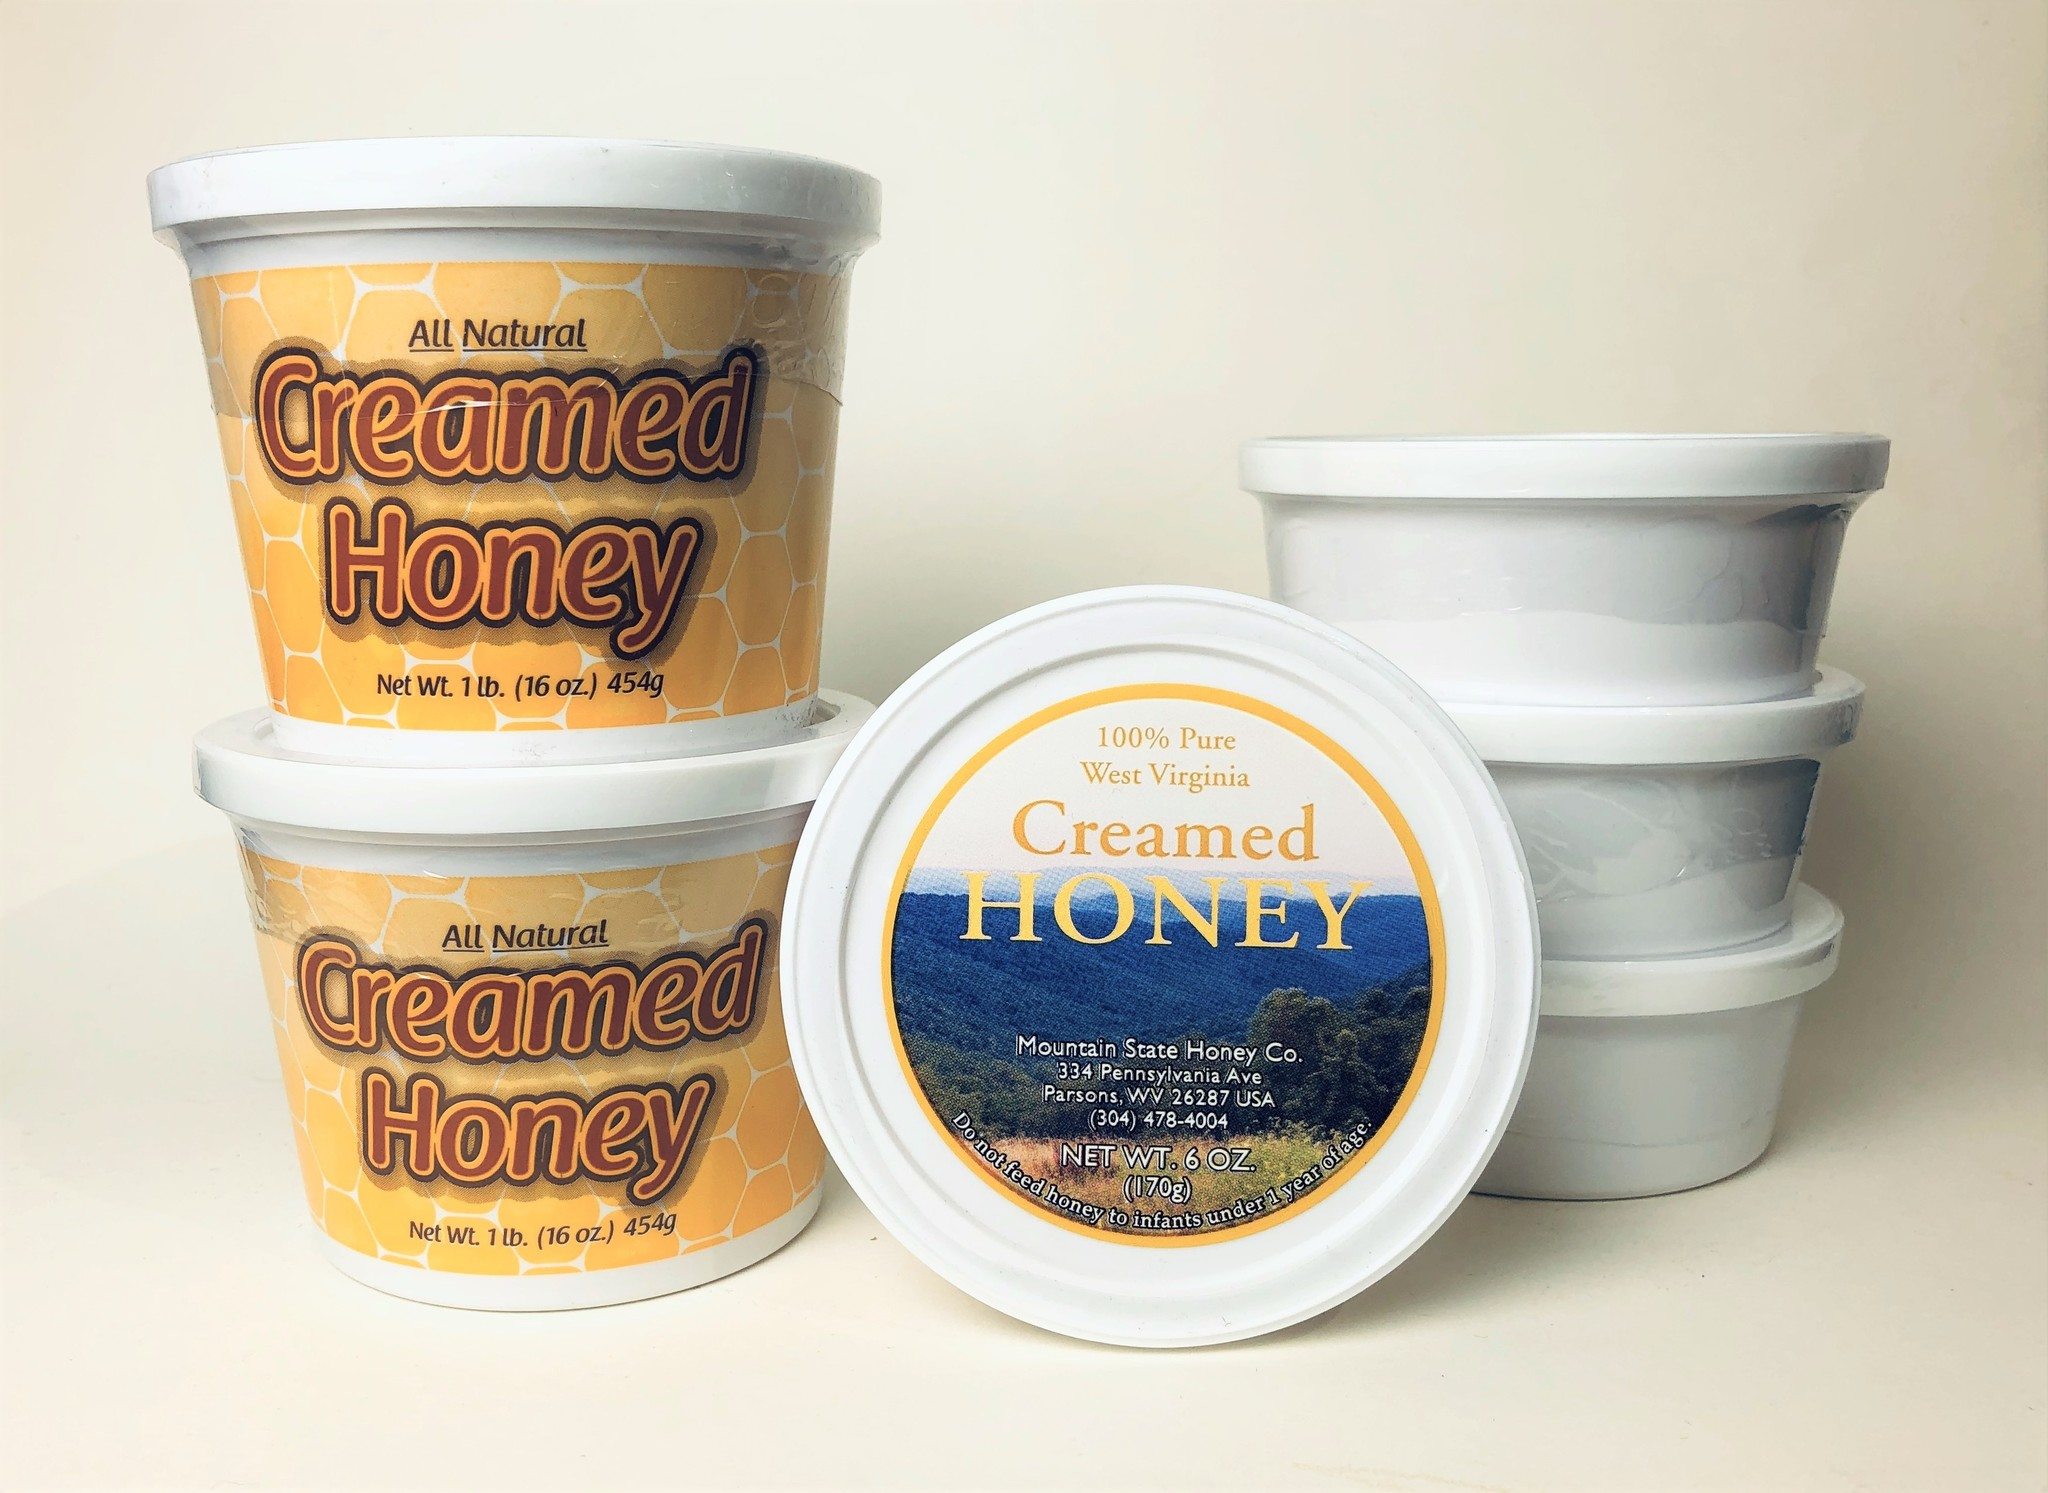 Mountain State Honey Company Mtn State Honey 6 oz. Creamed Peanut Butter